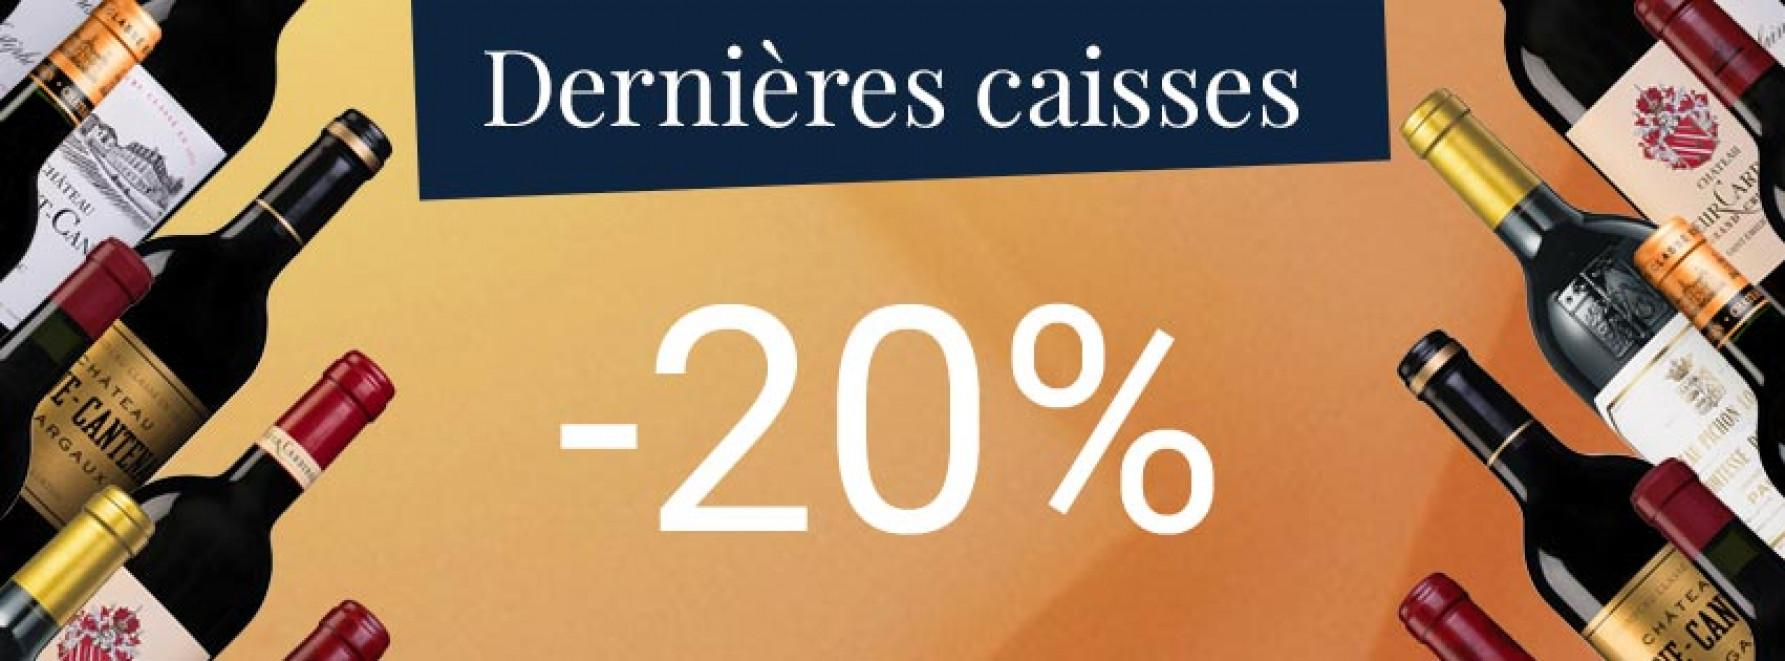 Dernières caisses à -20%